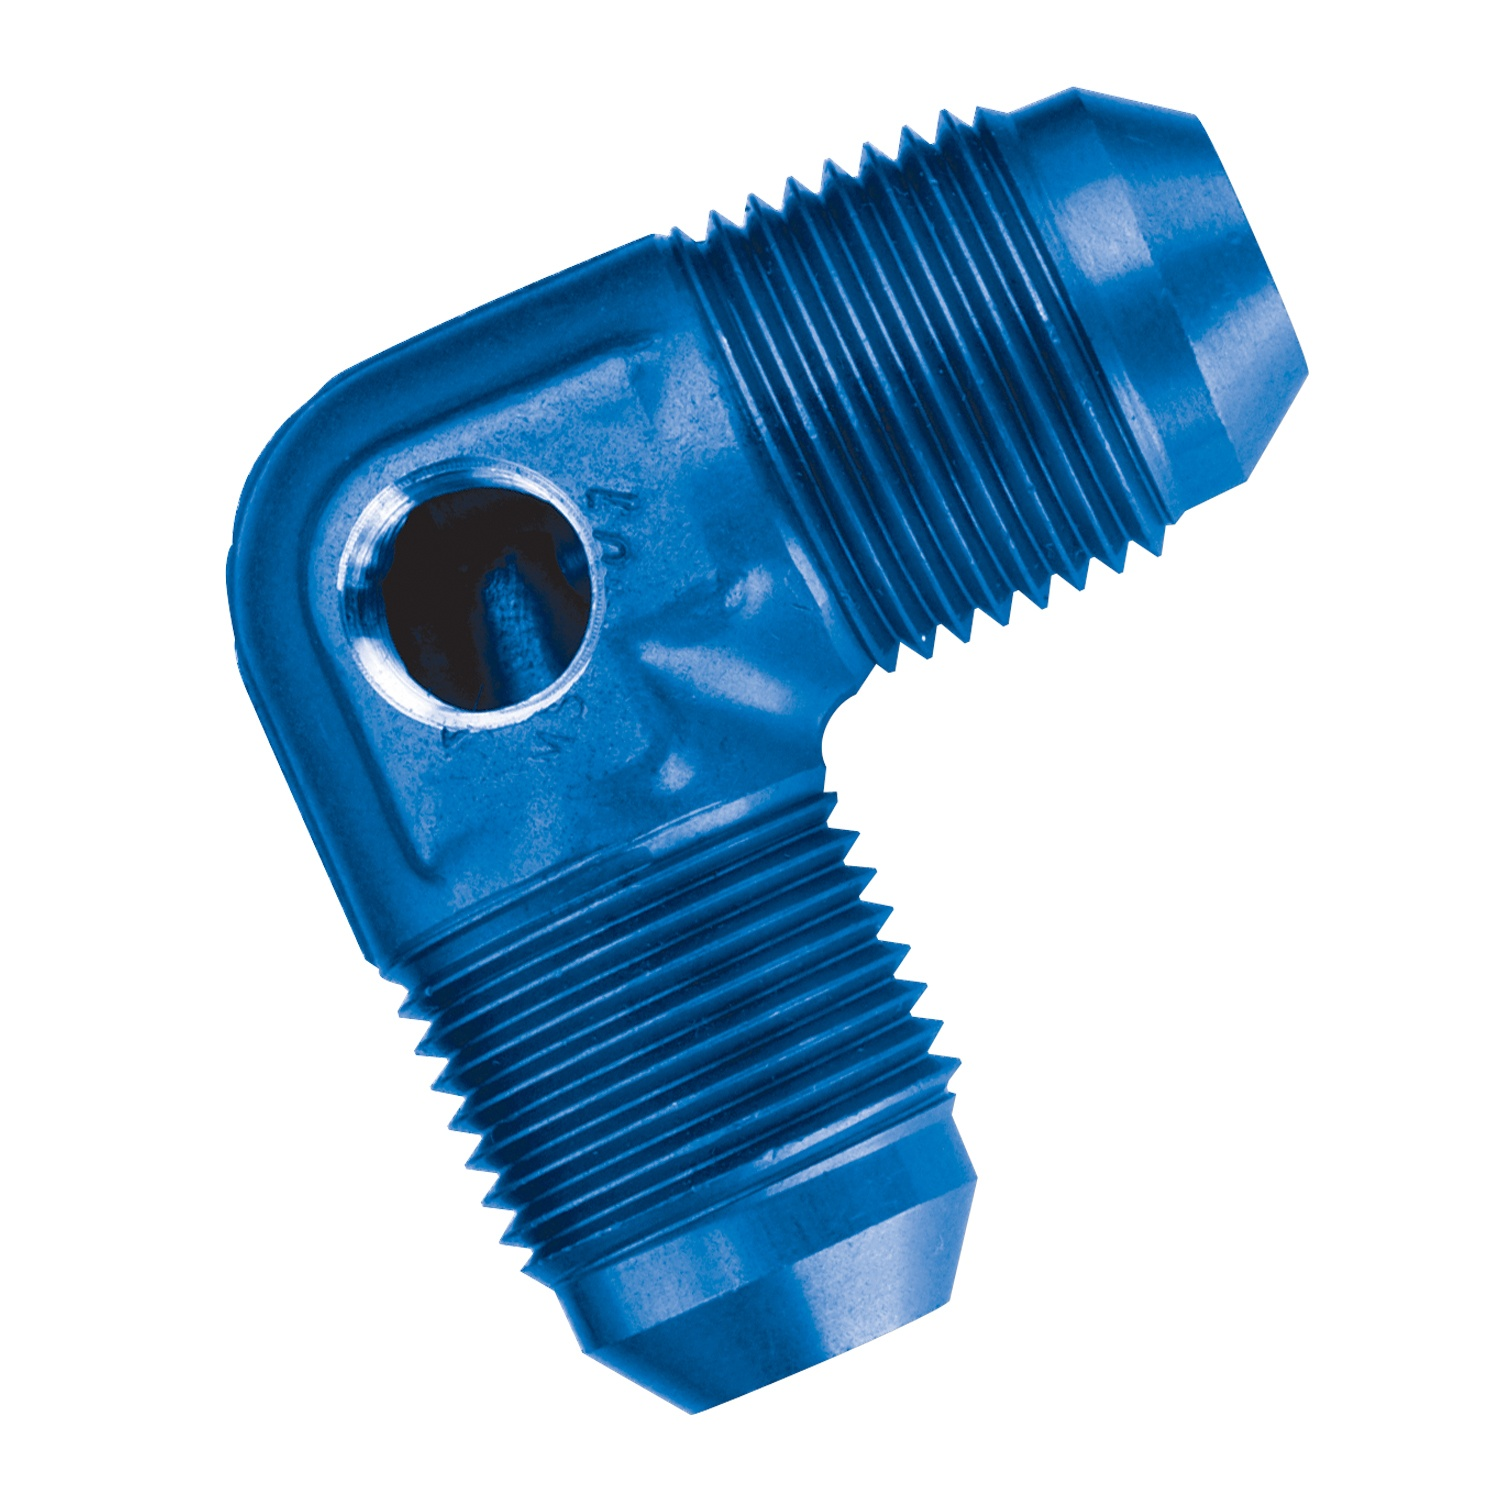 Russell 640790 Specialty Adapter Fitting; Flare 90 Deg. Fuel Line Adapter * NEW at Sears.com